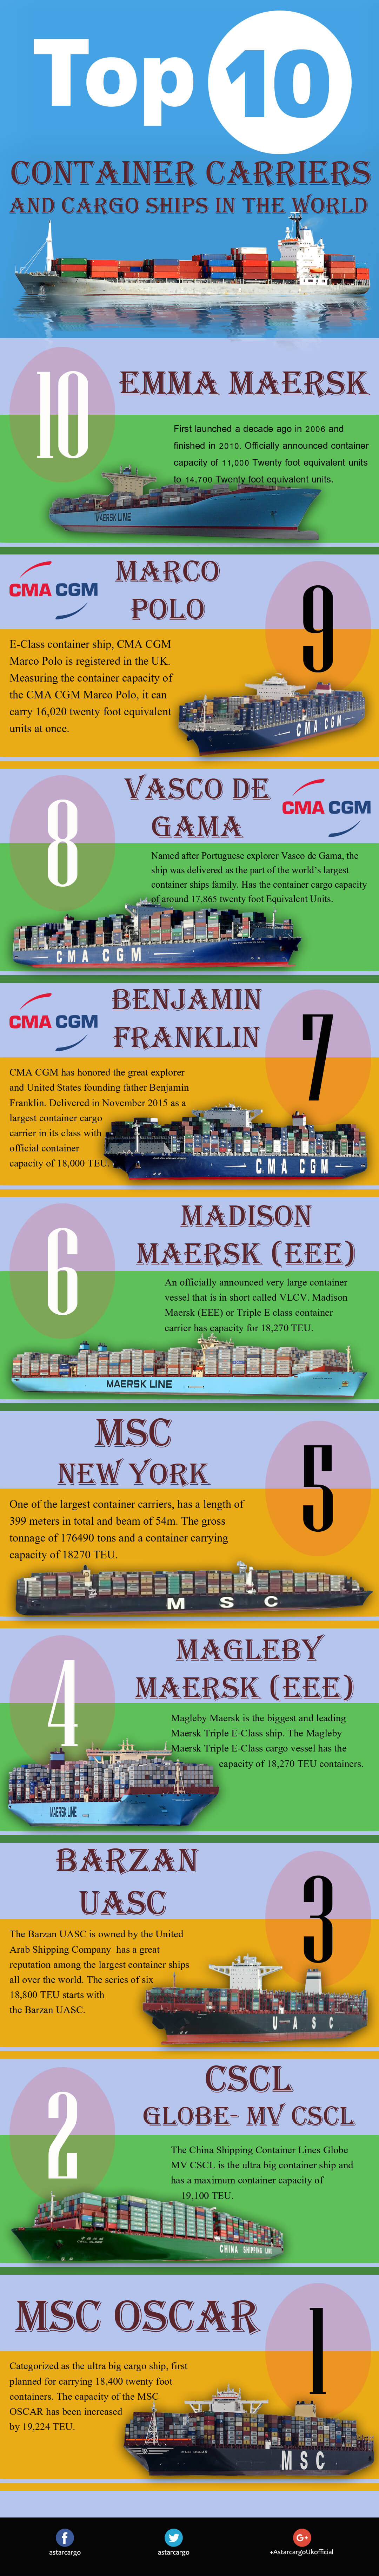 Top 10 Biggest Container Carriers and Cargo Ships in the World